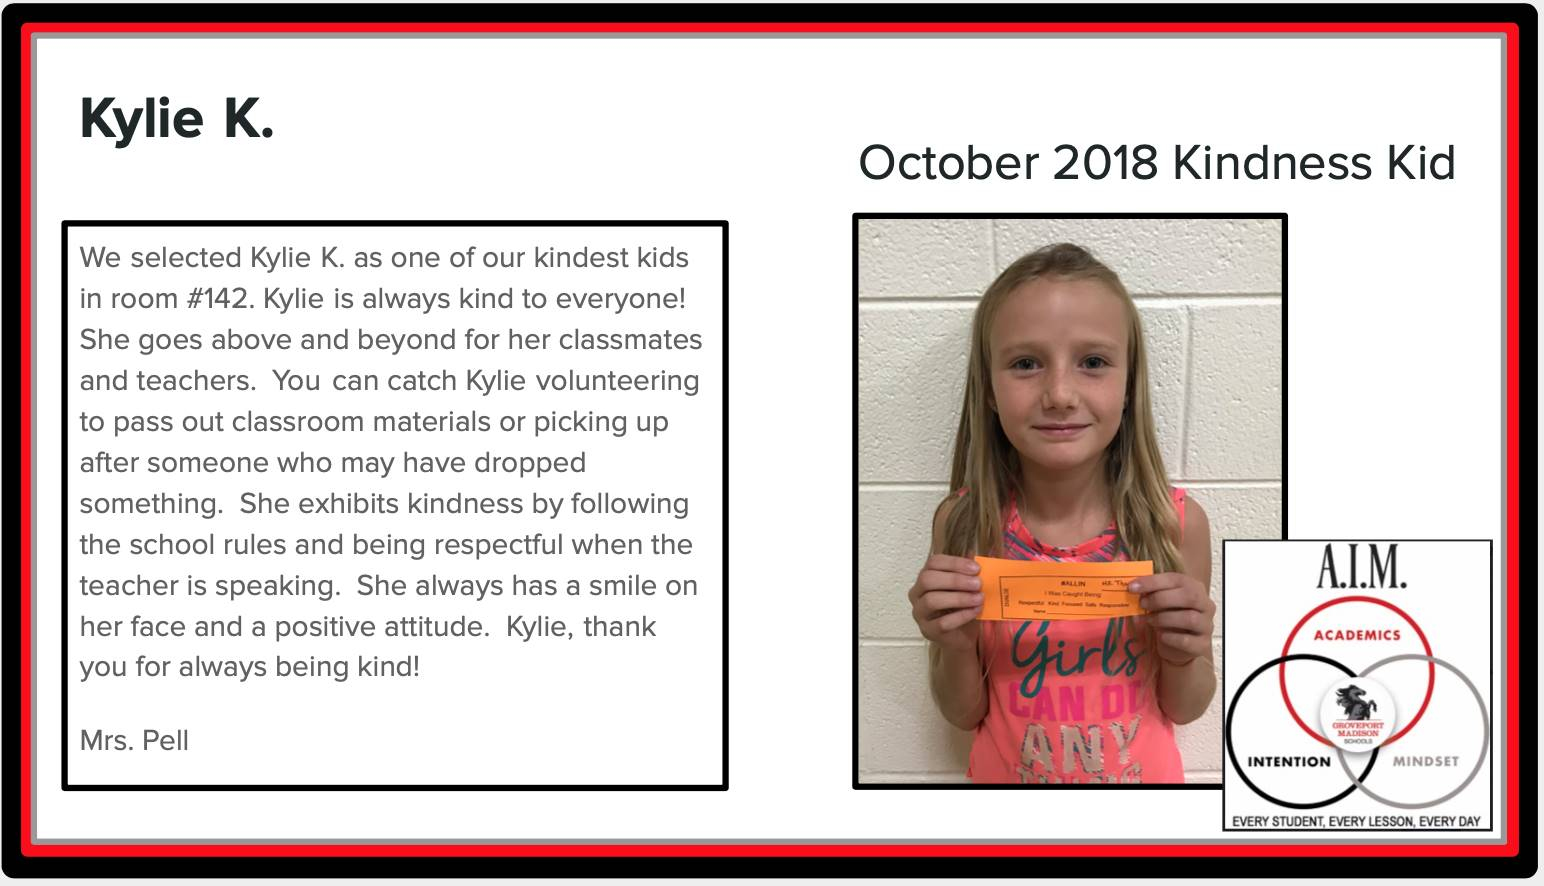 Kindness Kid Kylie